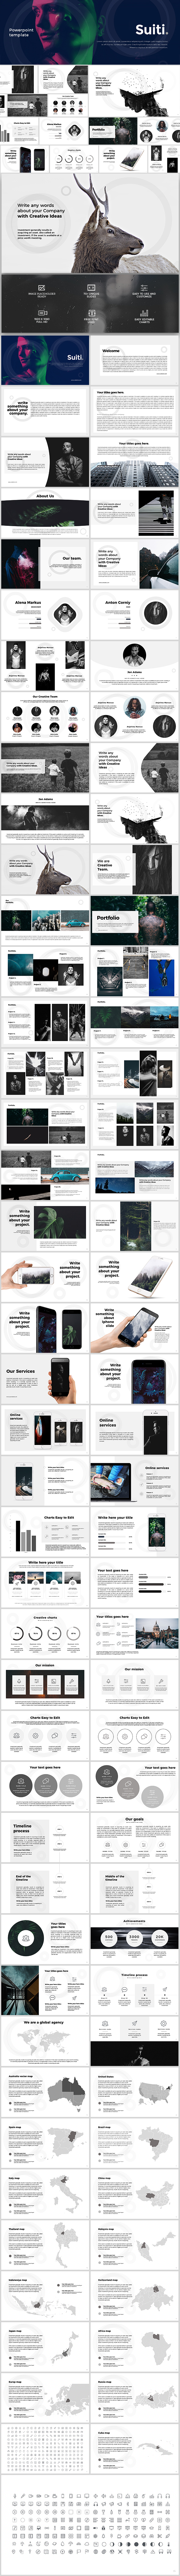 Suiti Powerpoint Template - PowerPoint Templates Presentation Templates